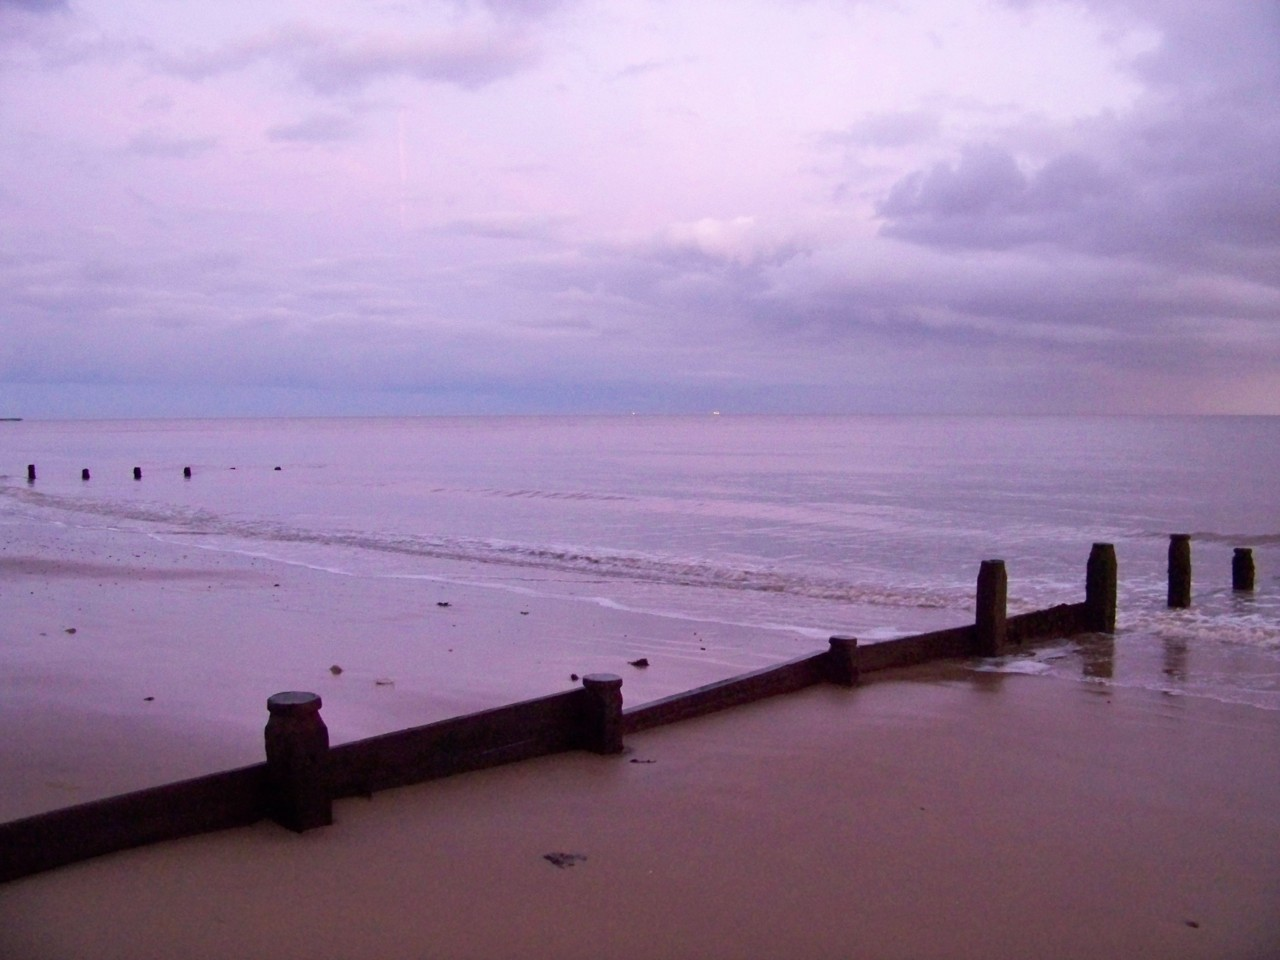 12th January 2012. On the beach this evening; making drawings for the new paintings.